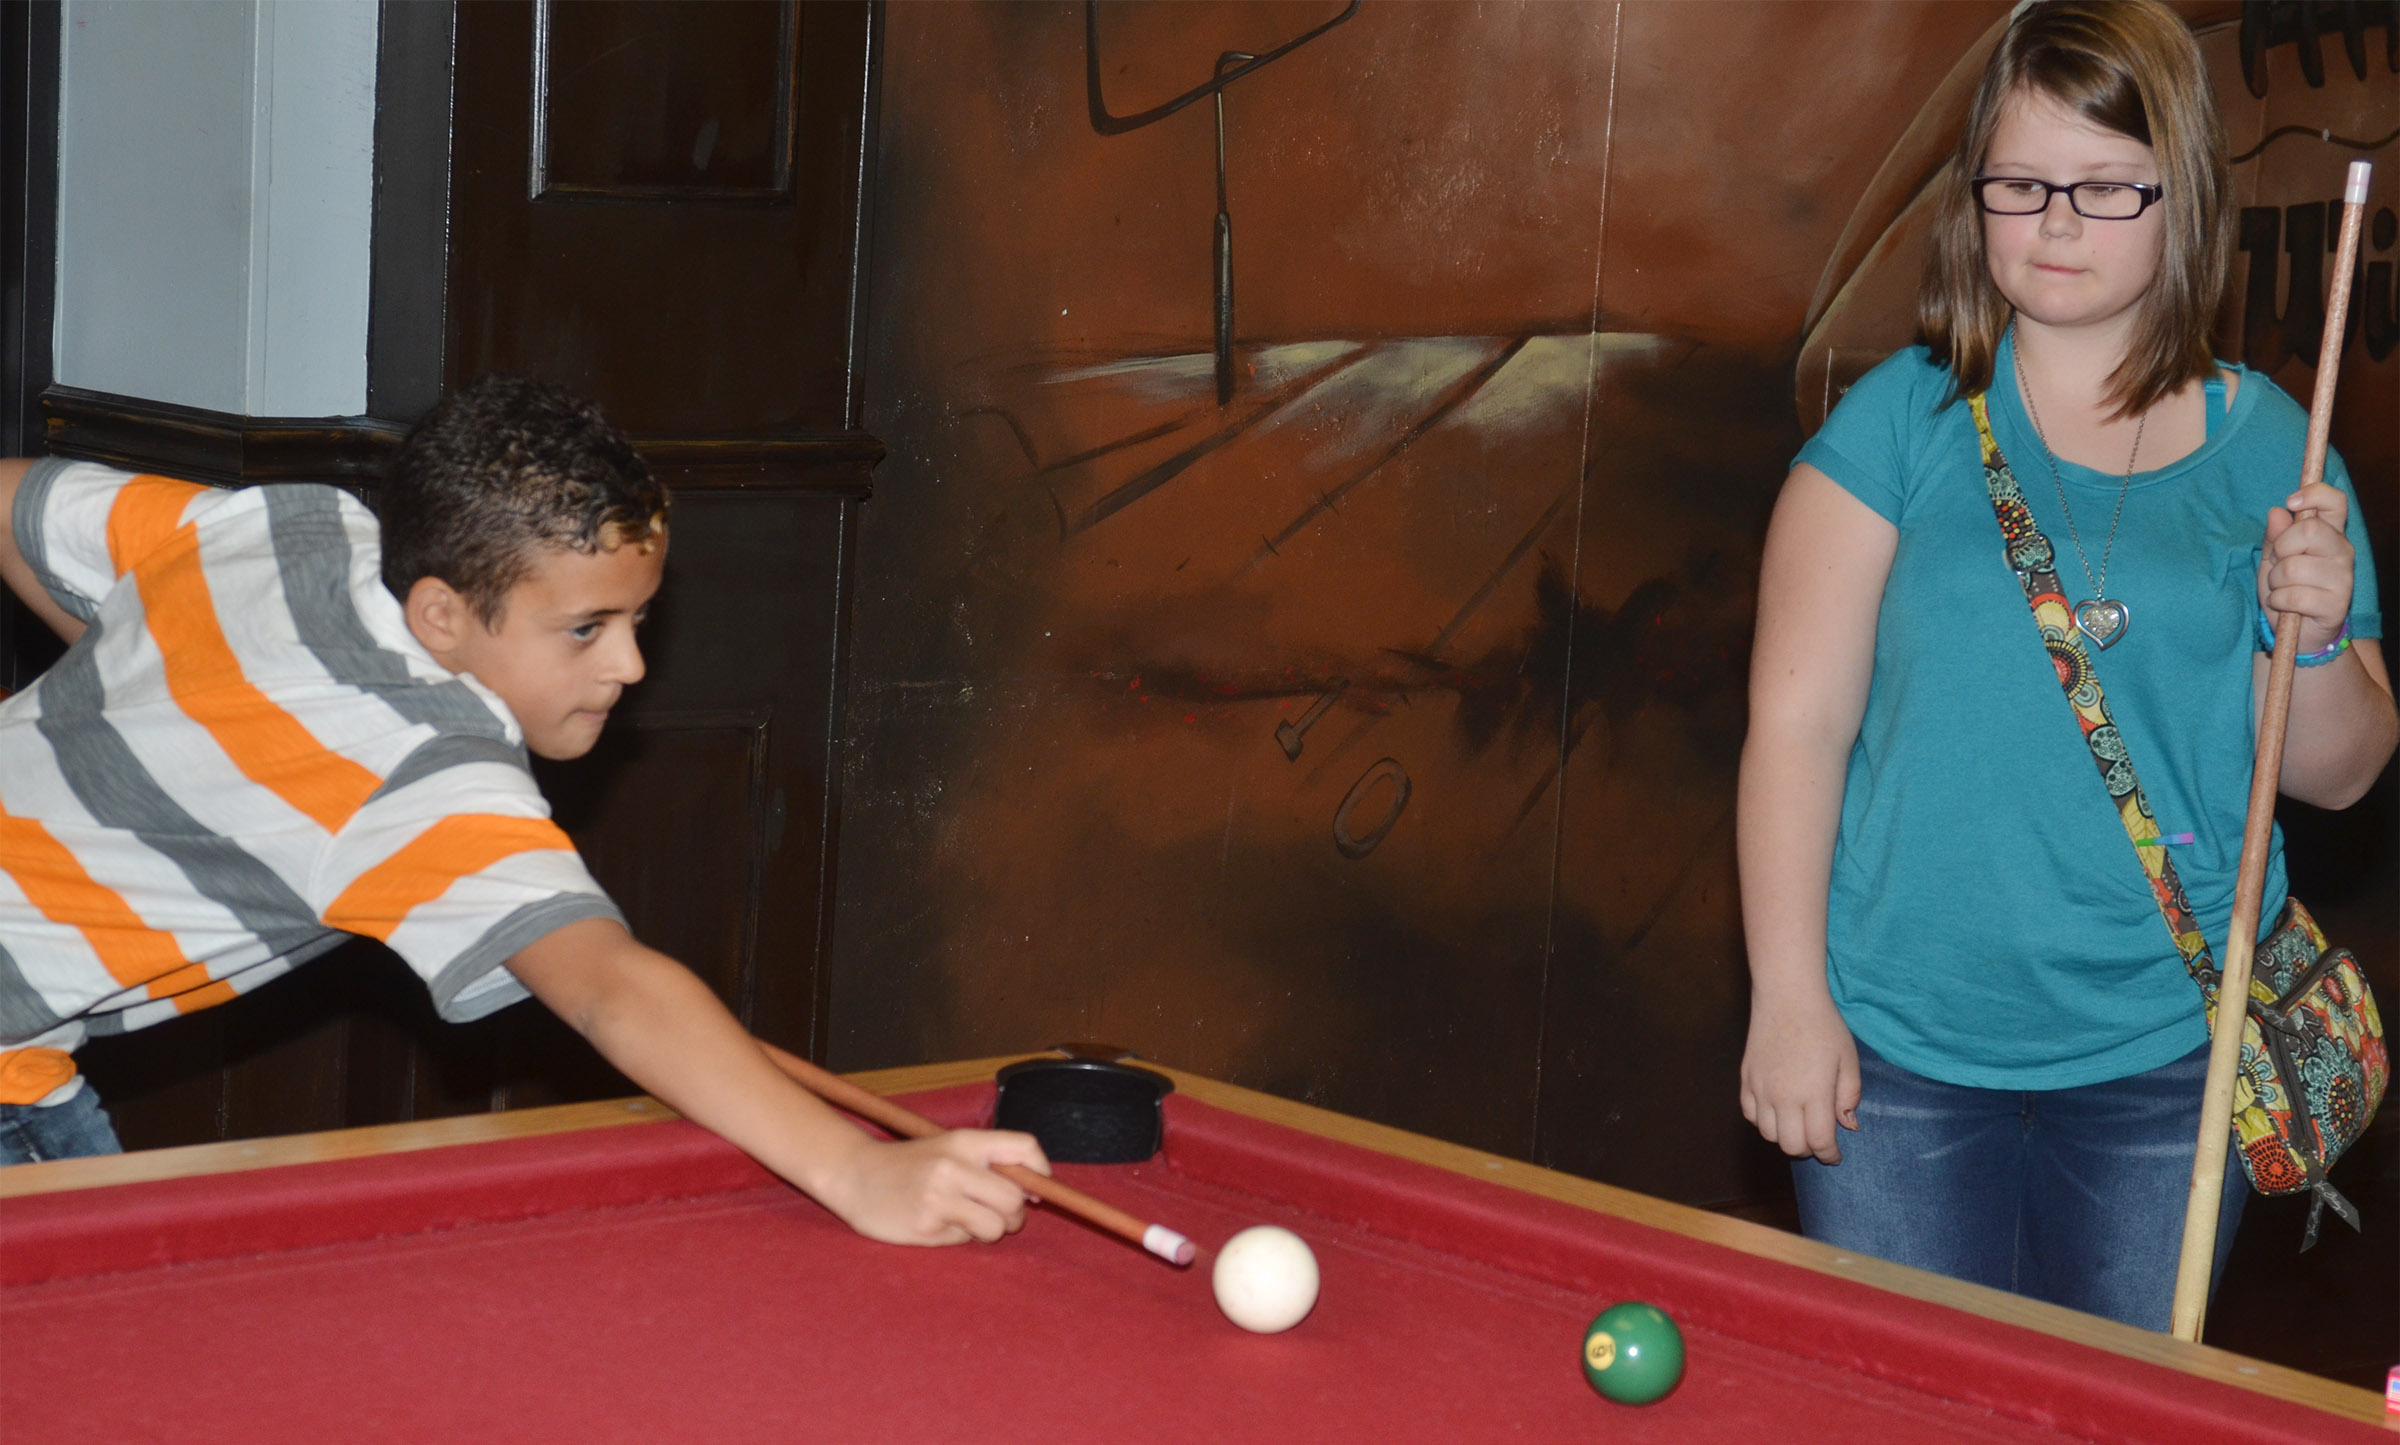 CMS fifth-graders Tucker Cartwright, at left, and Kylee Cox play pool at the Student Activities Center.